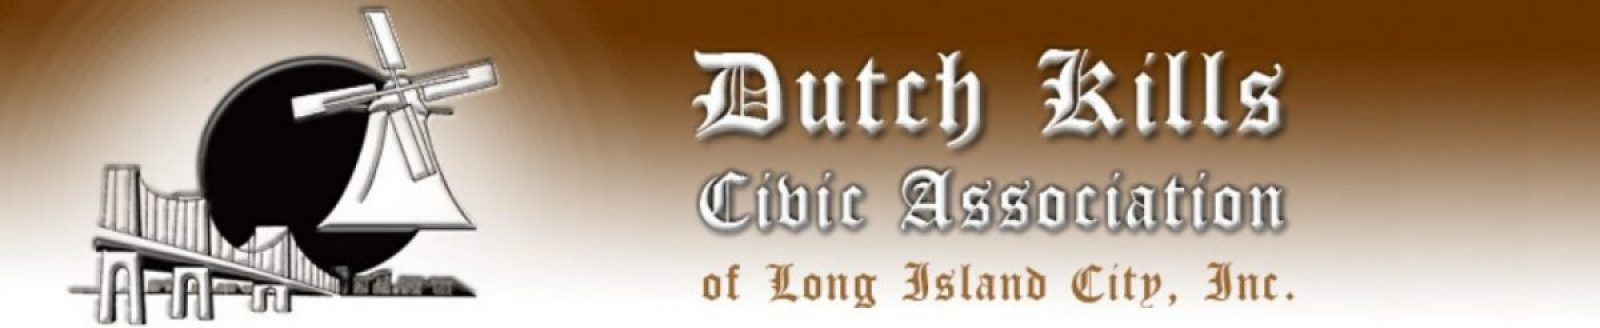 Dutch Kills Civic Association